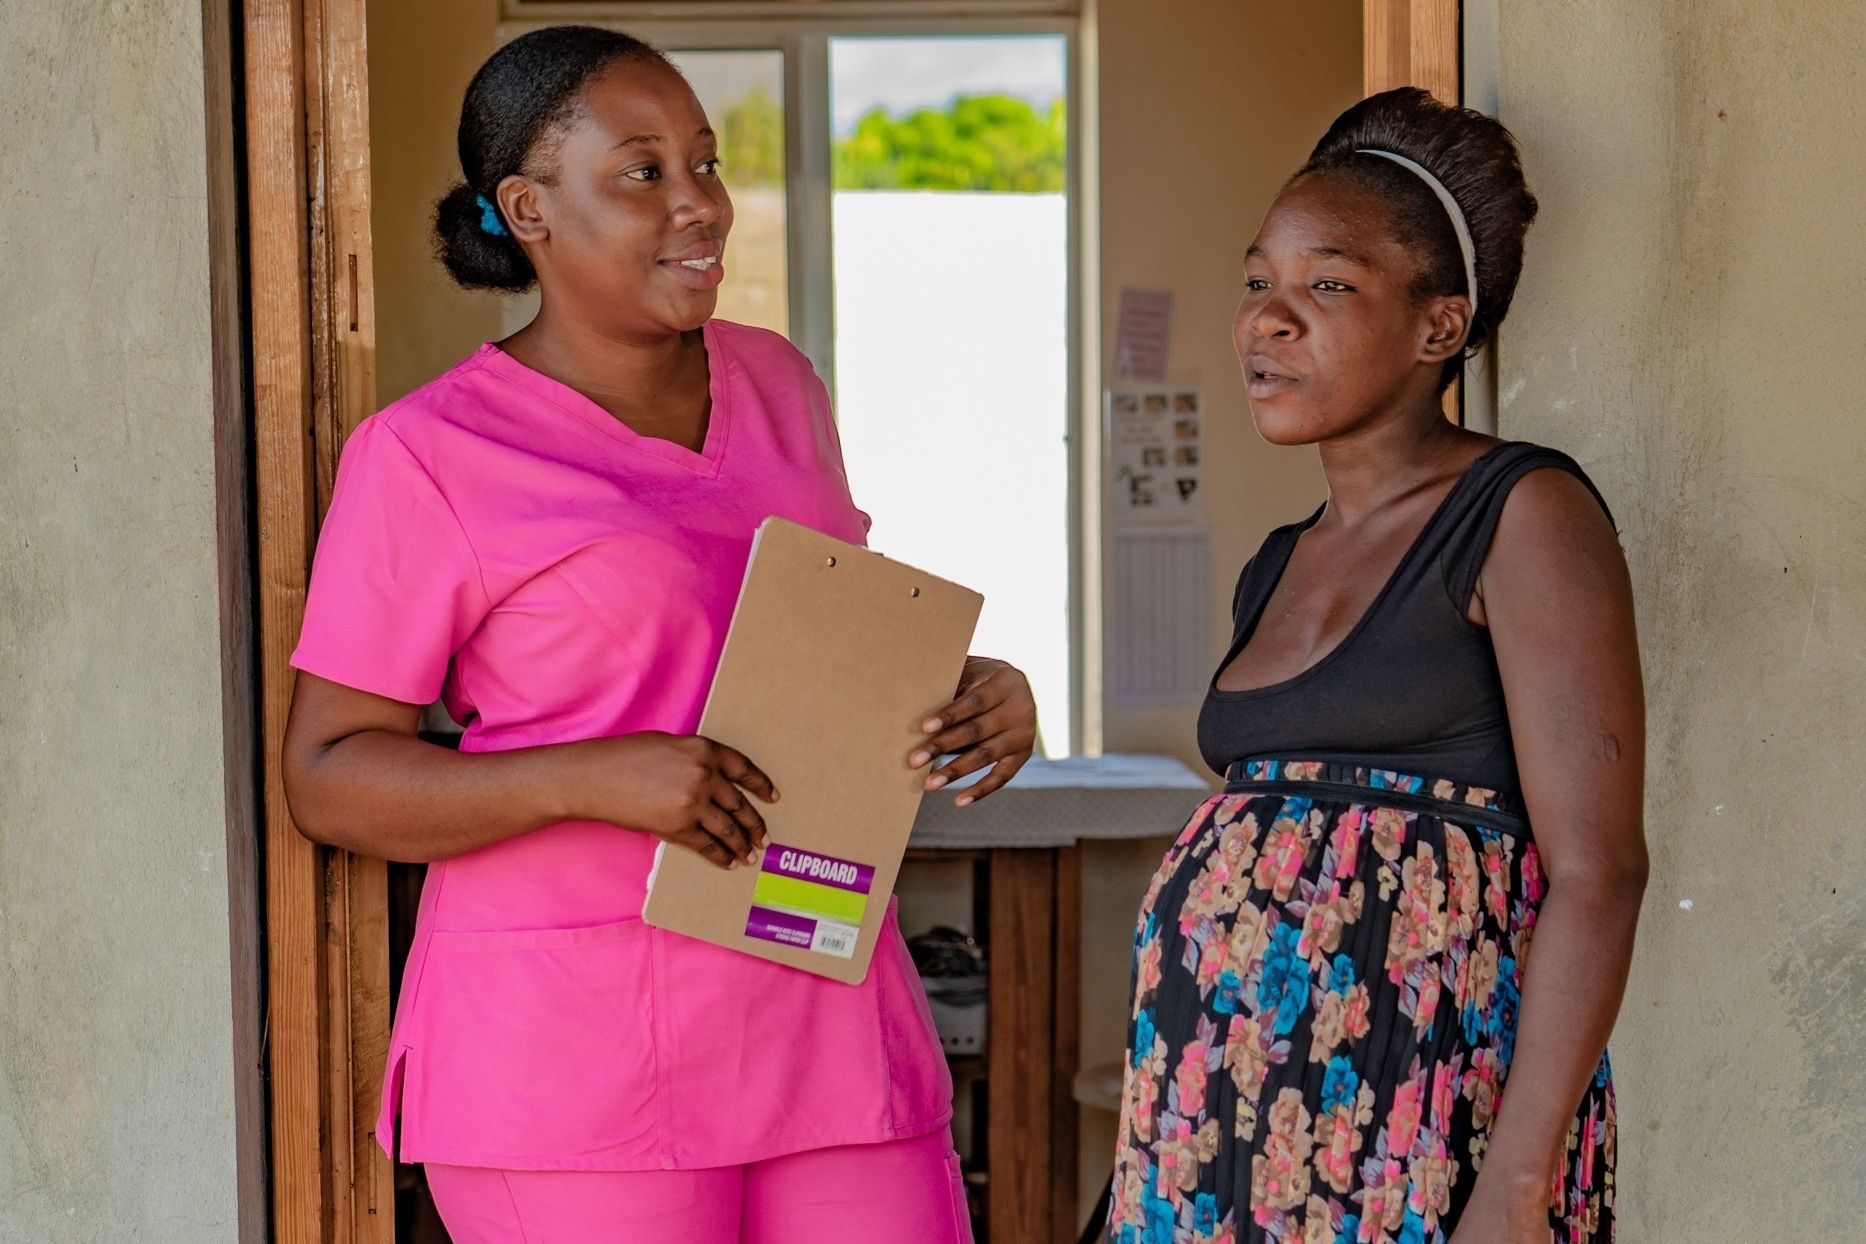 15. Unclaimed - The need for more care providers is a human rights issue! Per 10,000 population, Haiti has less than 1 physician and less than 1 nurse and midwife.